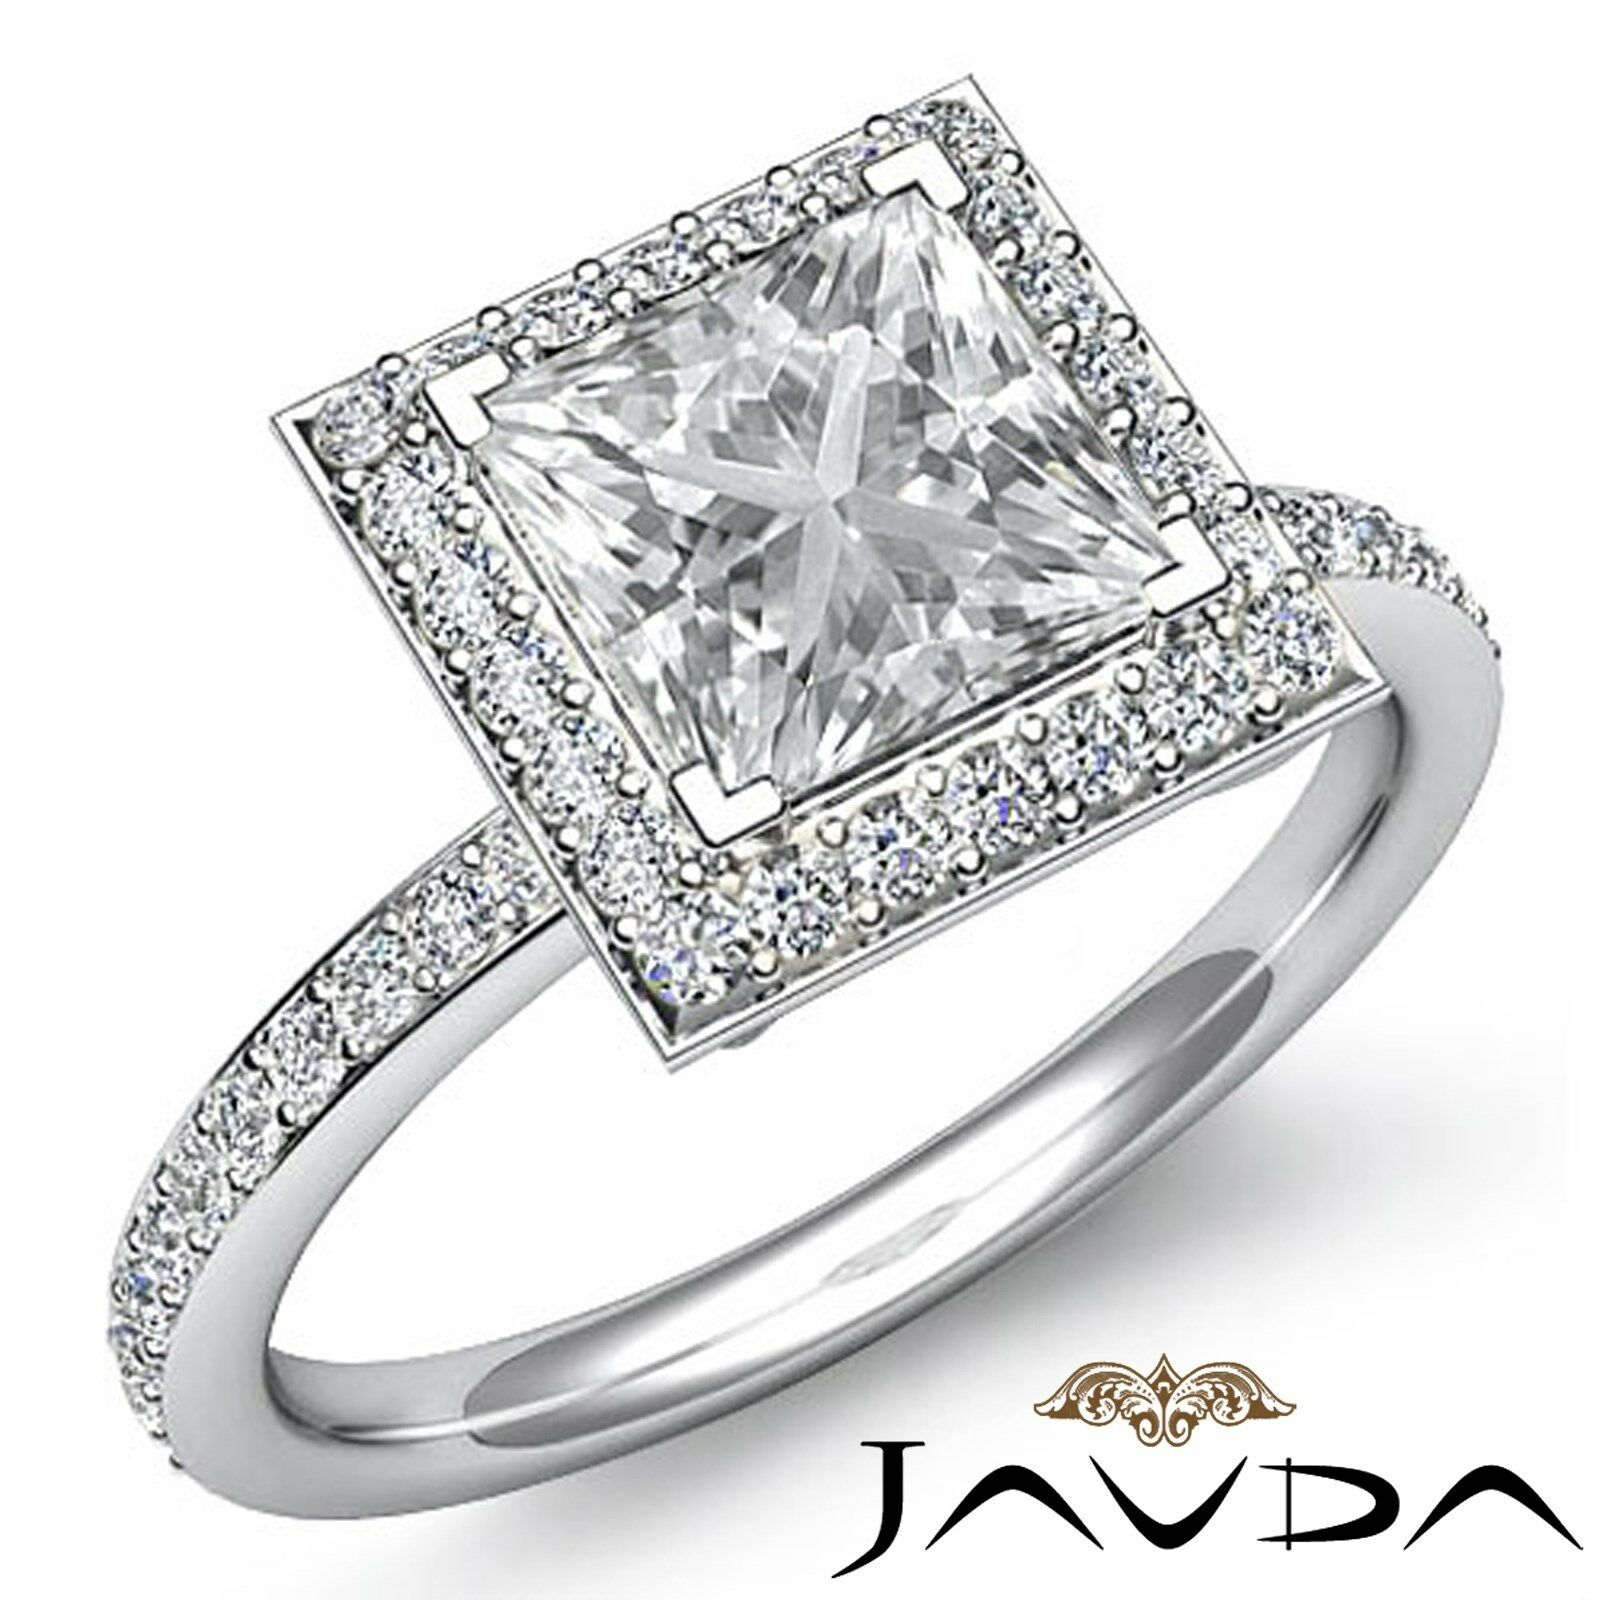 Halo Pave Set Princess Cut Diamond Engagement Ring GIA G Color VS1 Clarity 2.5Ct